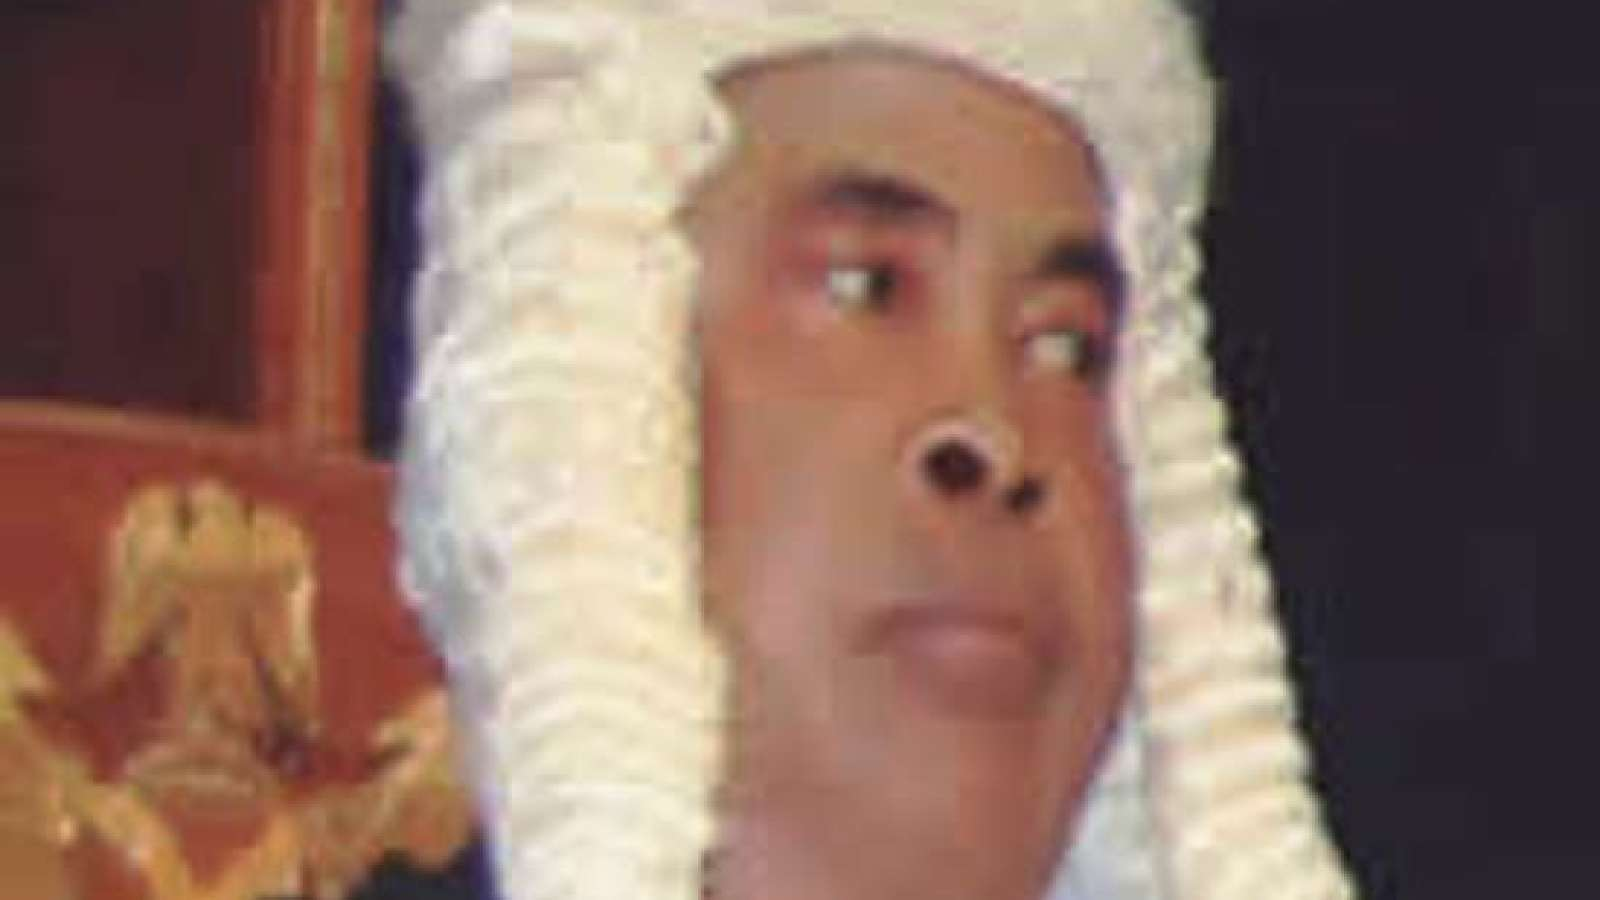 FG Files More Charges against Justice Ngwuta of Supreme Court